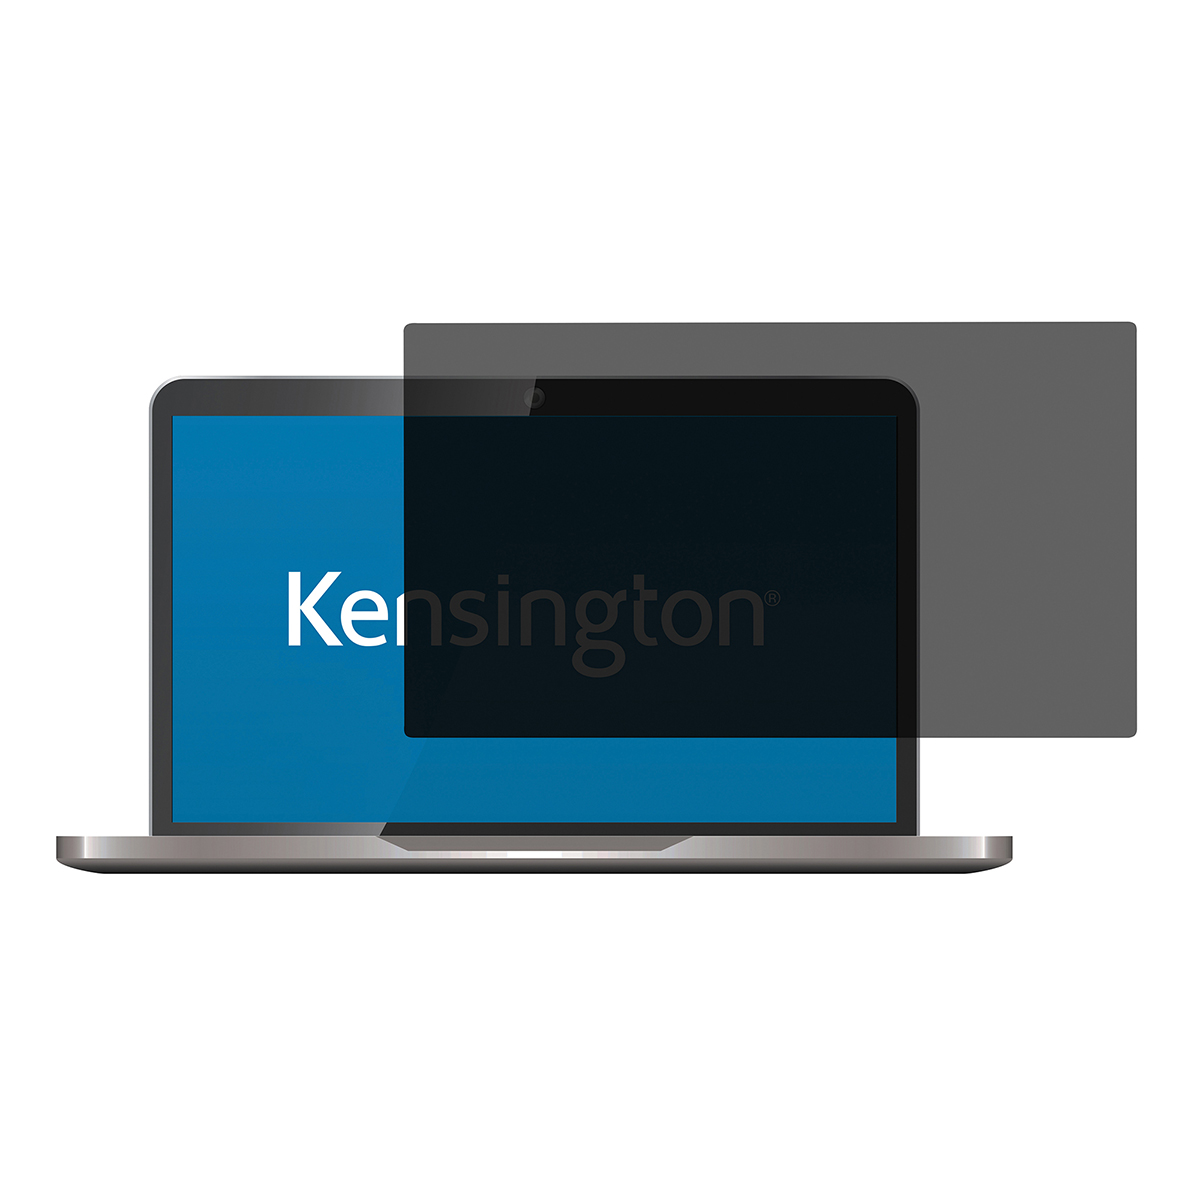 Kensington 626370 Privacy Filter 2 Way Adhesive for Dell Latitude 5289